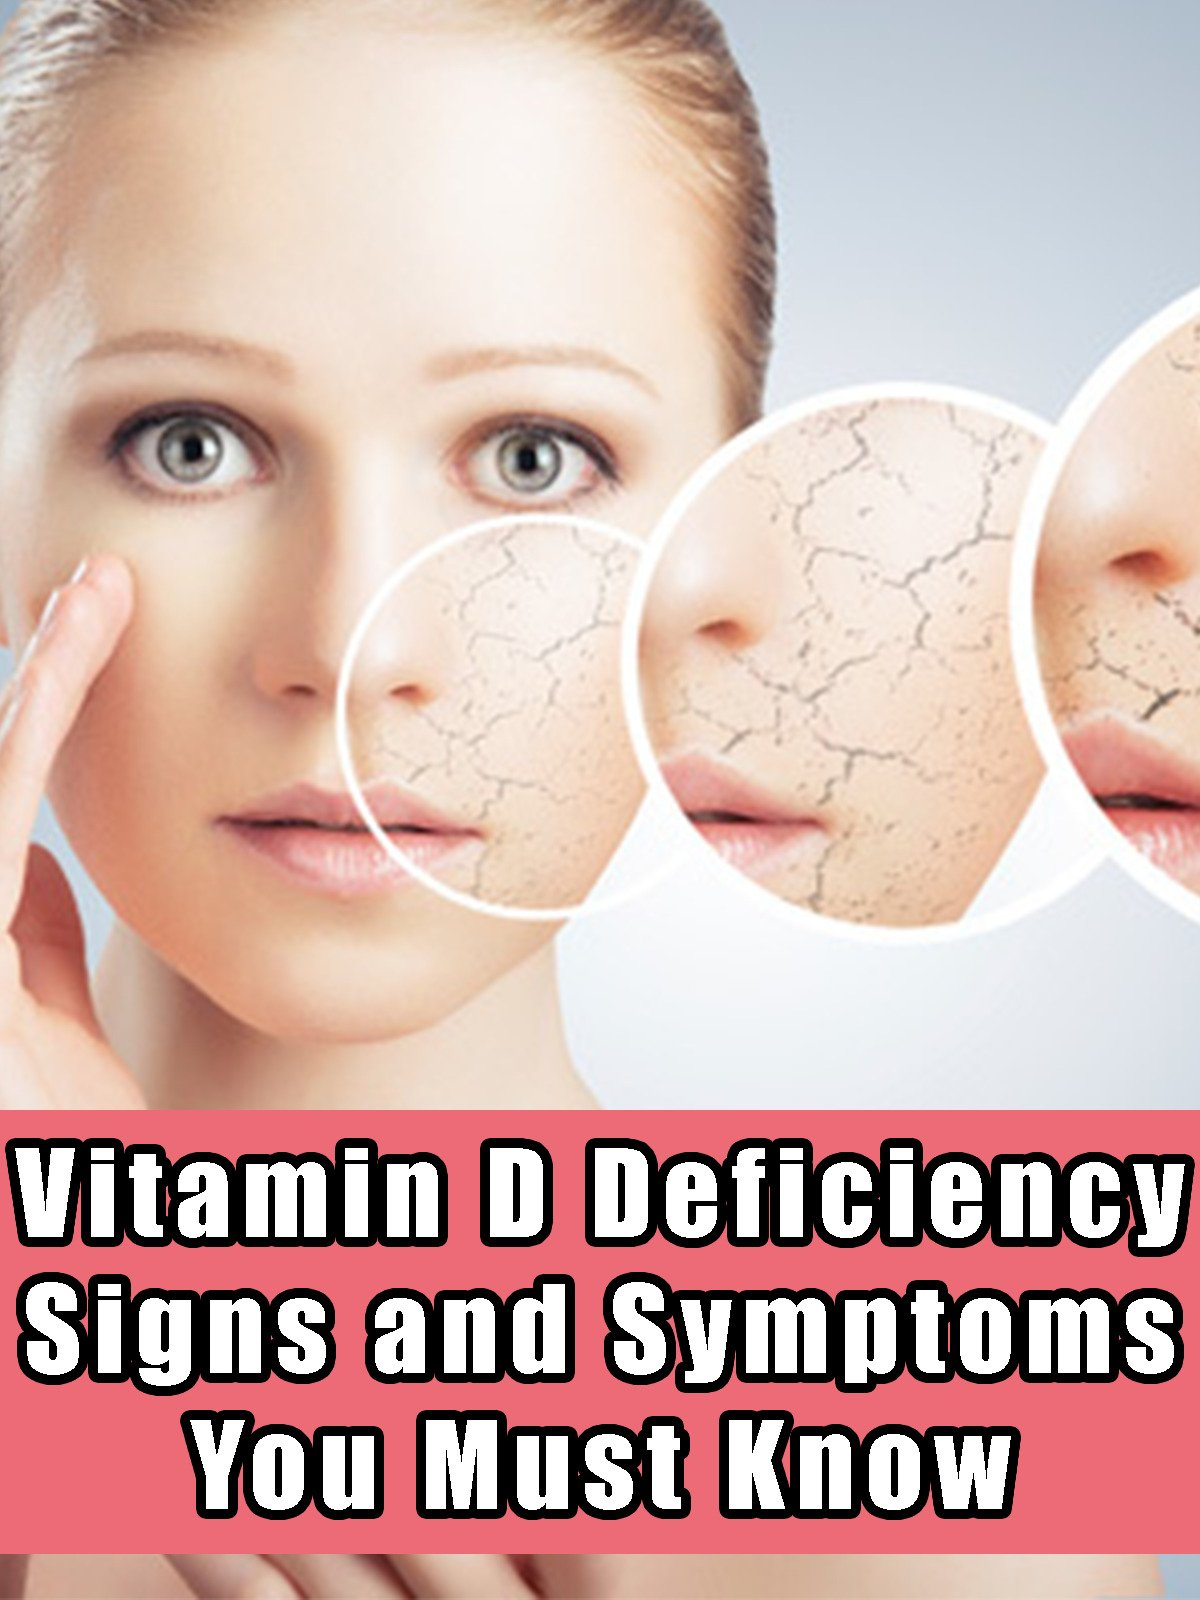 Amazon.com: Watch Vitamin D Deficiency - Signs and Symptoms You ...